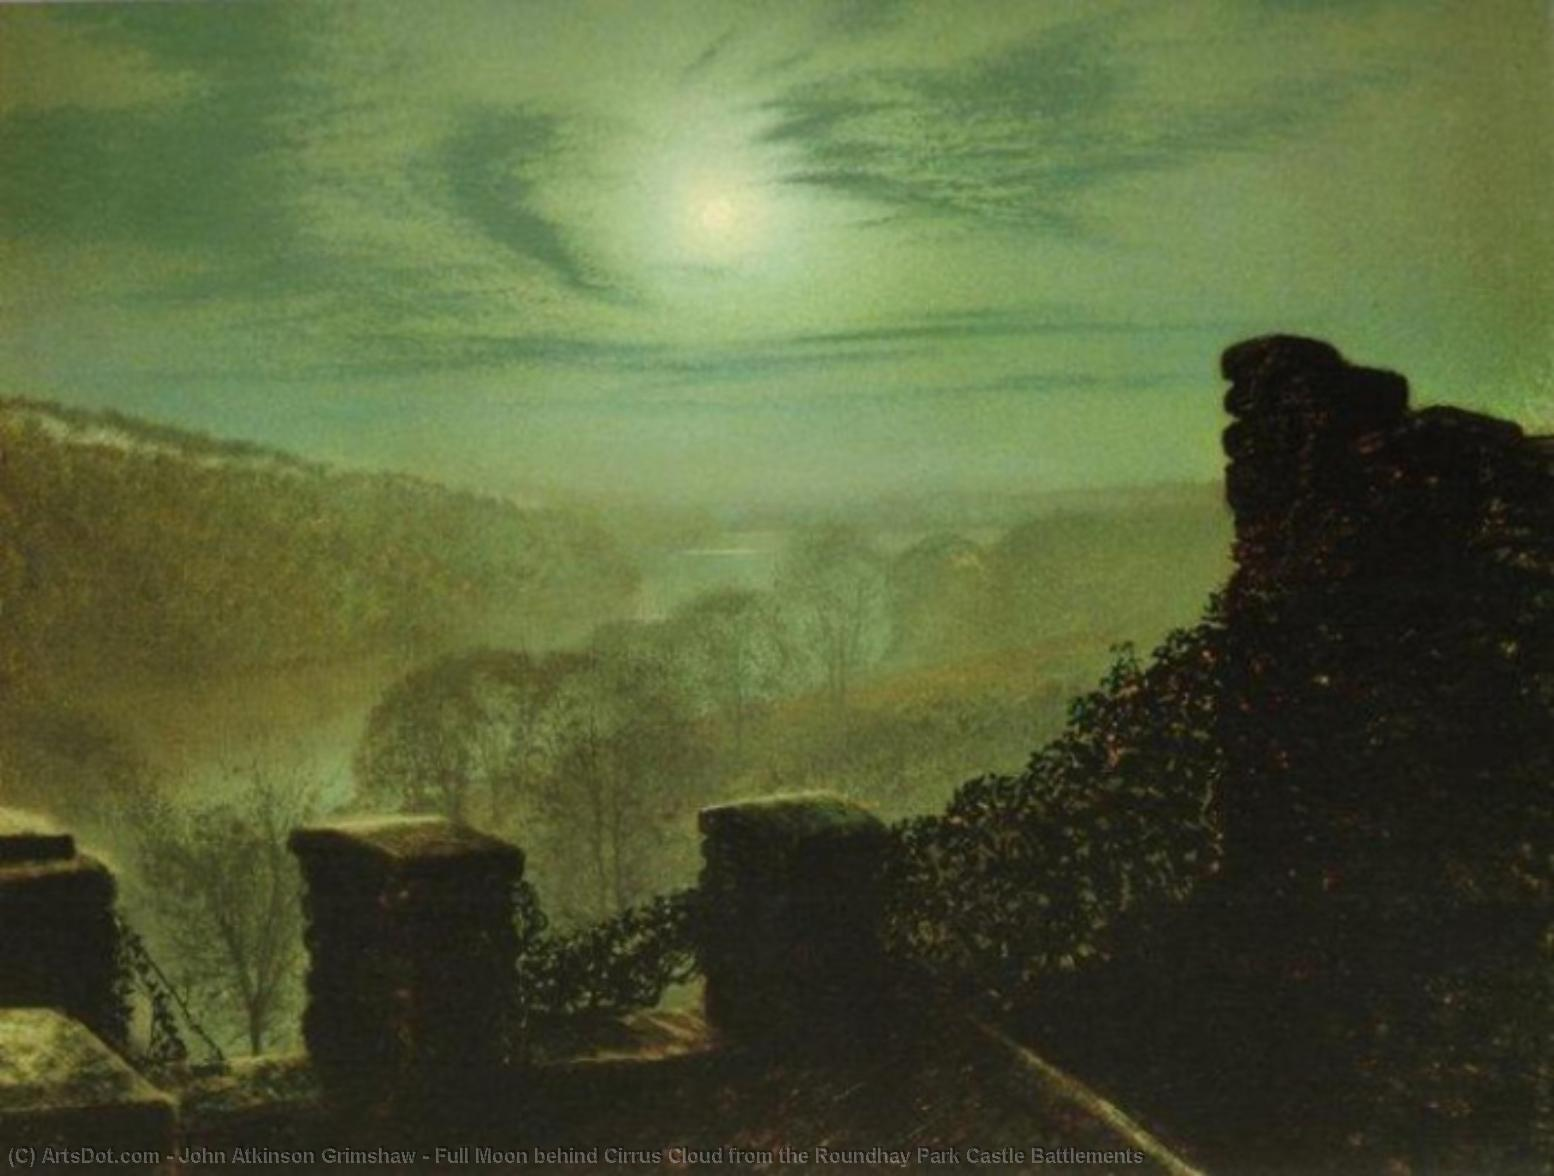 Full Moon behind Cirrus Cloud from the Roundhay Park Castle Battlements by John Atkinson Grimshaw (1836-1893, United Kingdom) | Museum Art Reproductions | ArtsDot.com